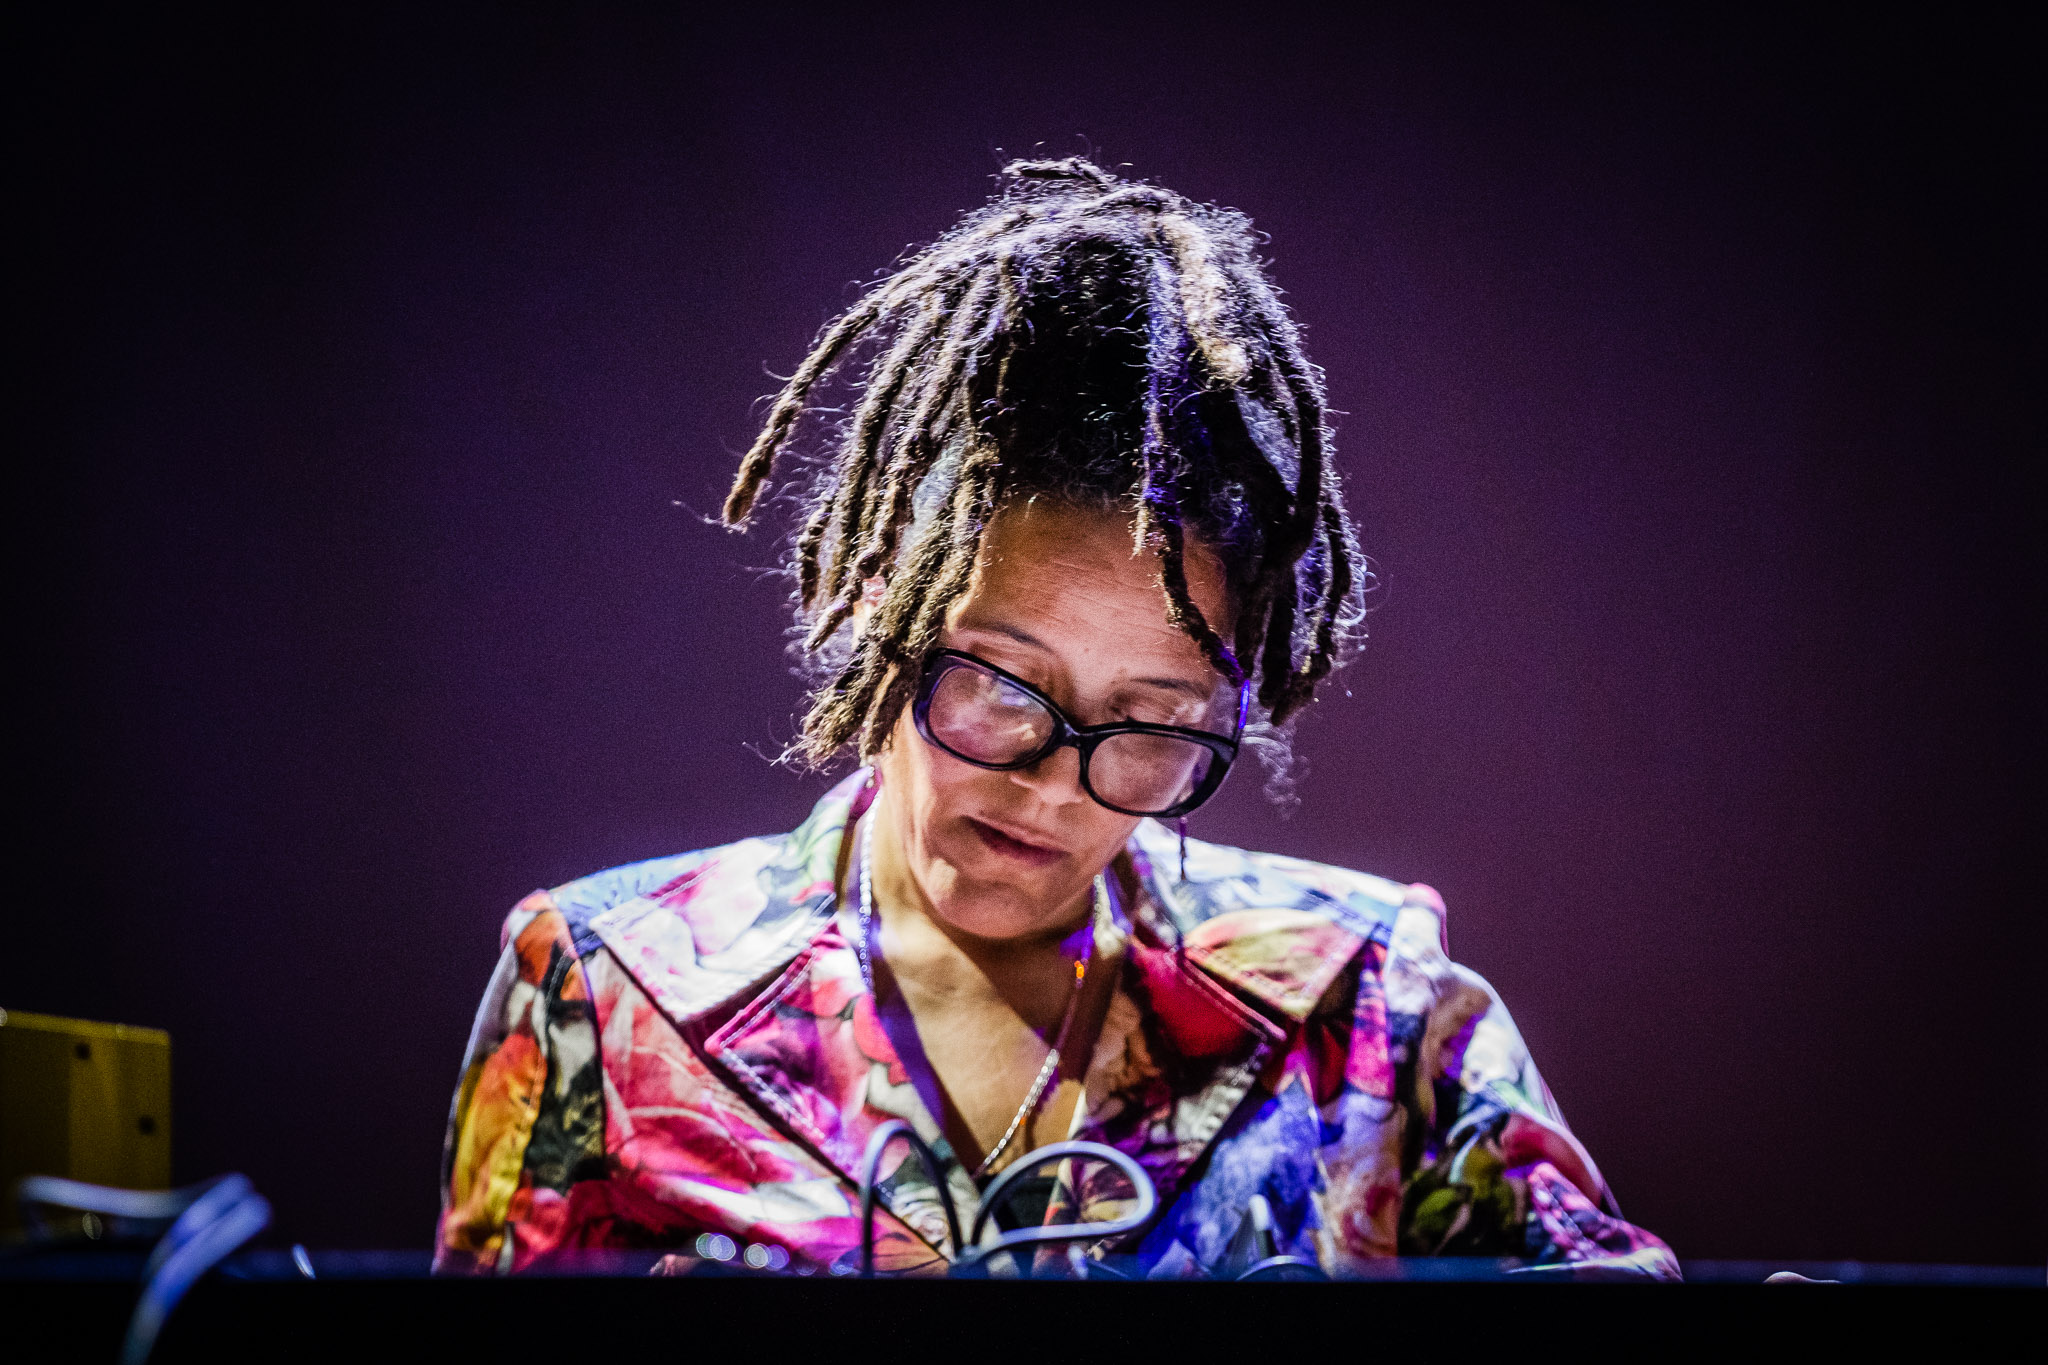 Stream 'Offering', Nicole Mitchell & Moor Mother's special live collaboration at LGW18